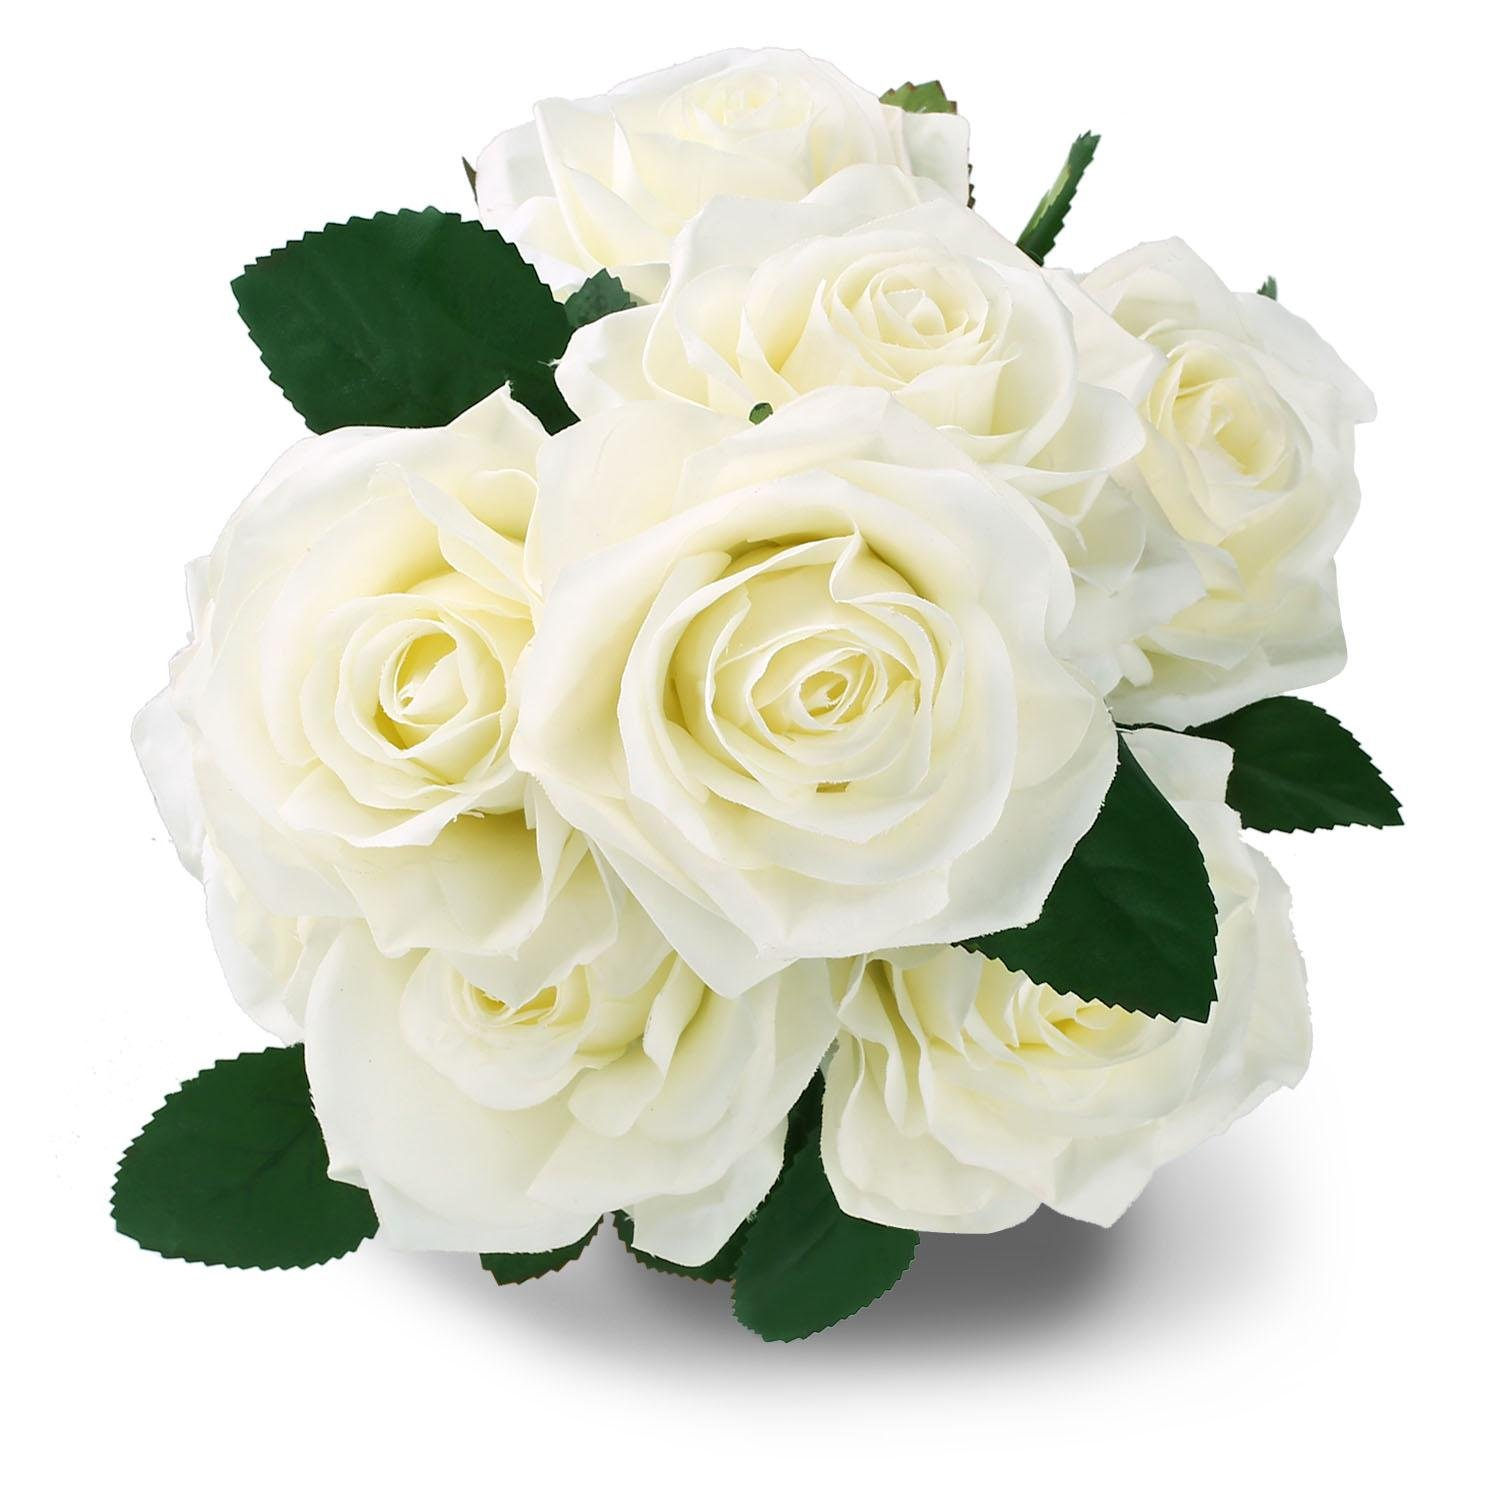 Amazon Soledi Silk Rose White 10 Heads Artificial Flower French